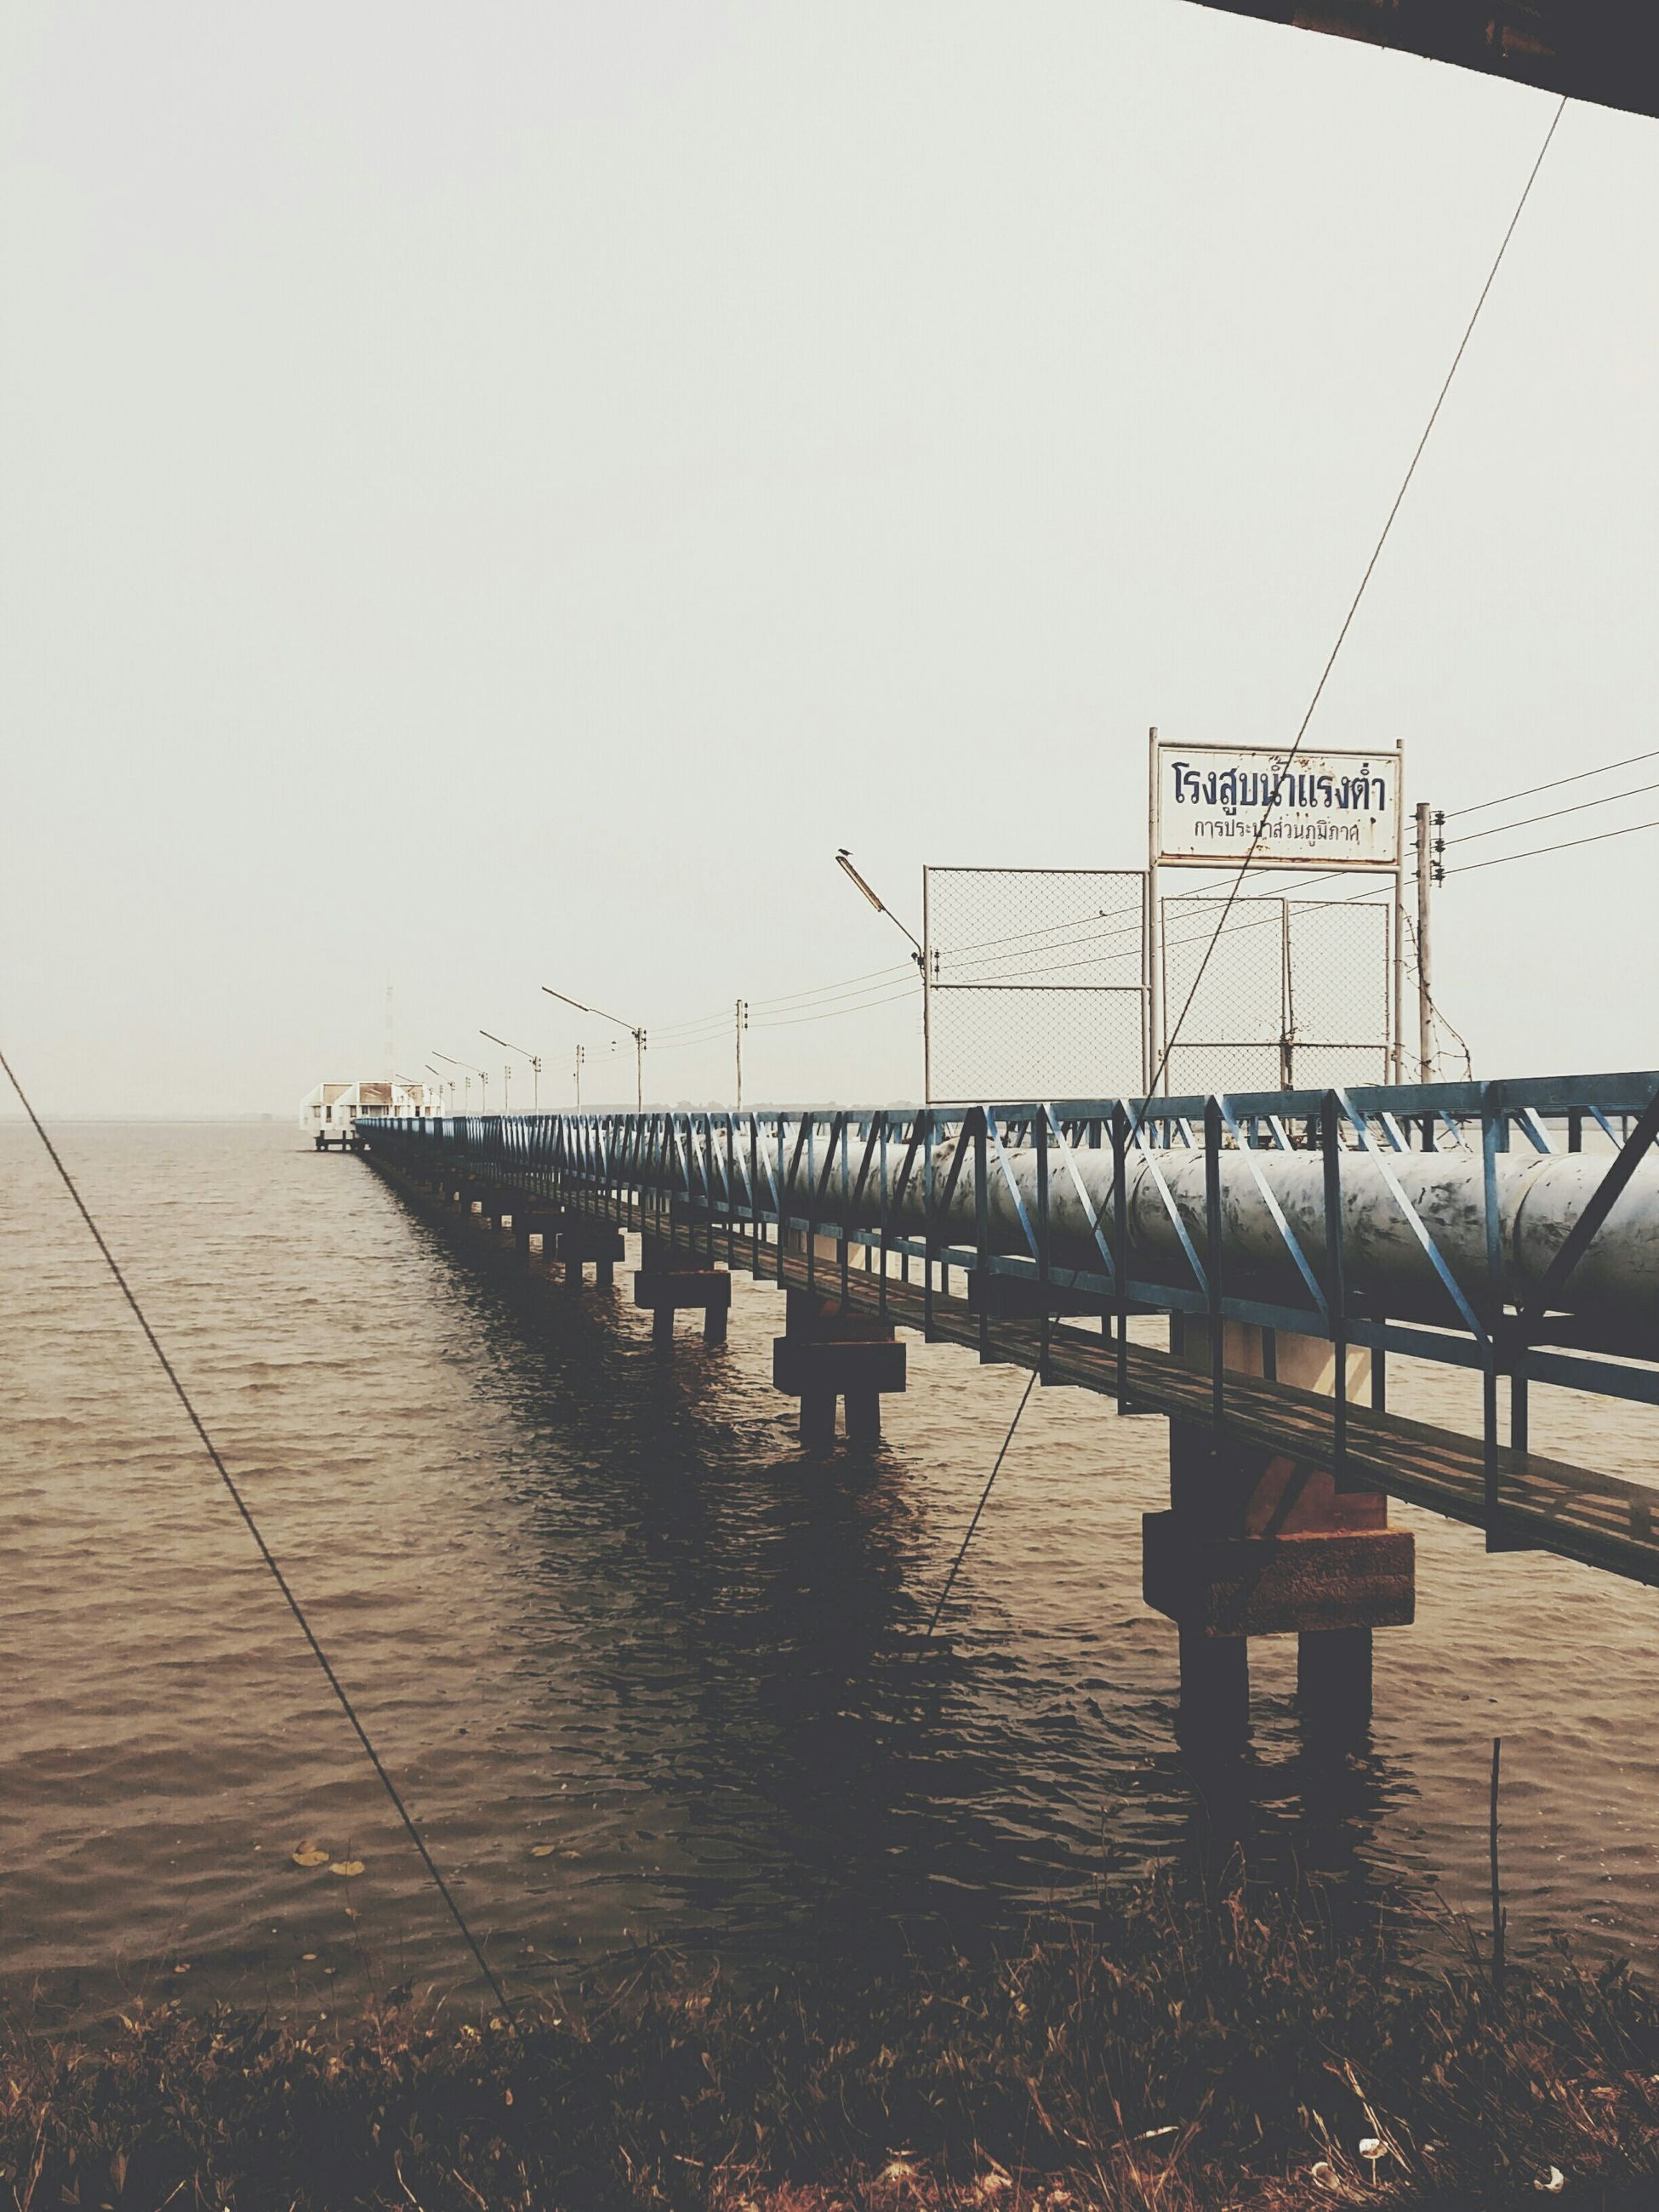 water, sea, clear sky, pier, horizon over water, copy space, tranquility, tranquil scene, nature, sky, transportation, bird, beach, outdoors, scenics, incidental people, sunset, wood - material, built structure, beauty in nature